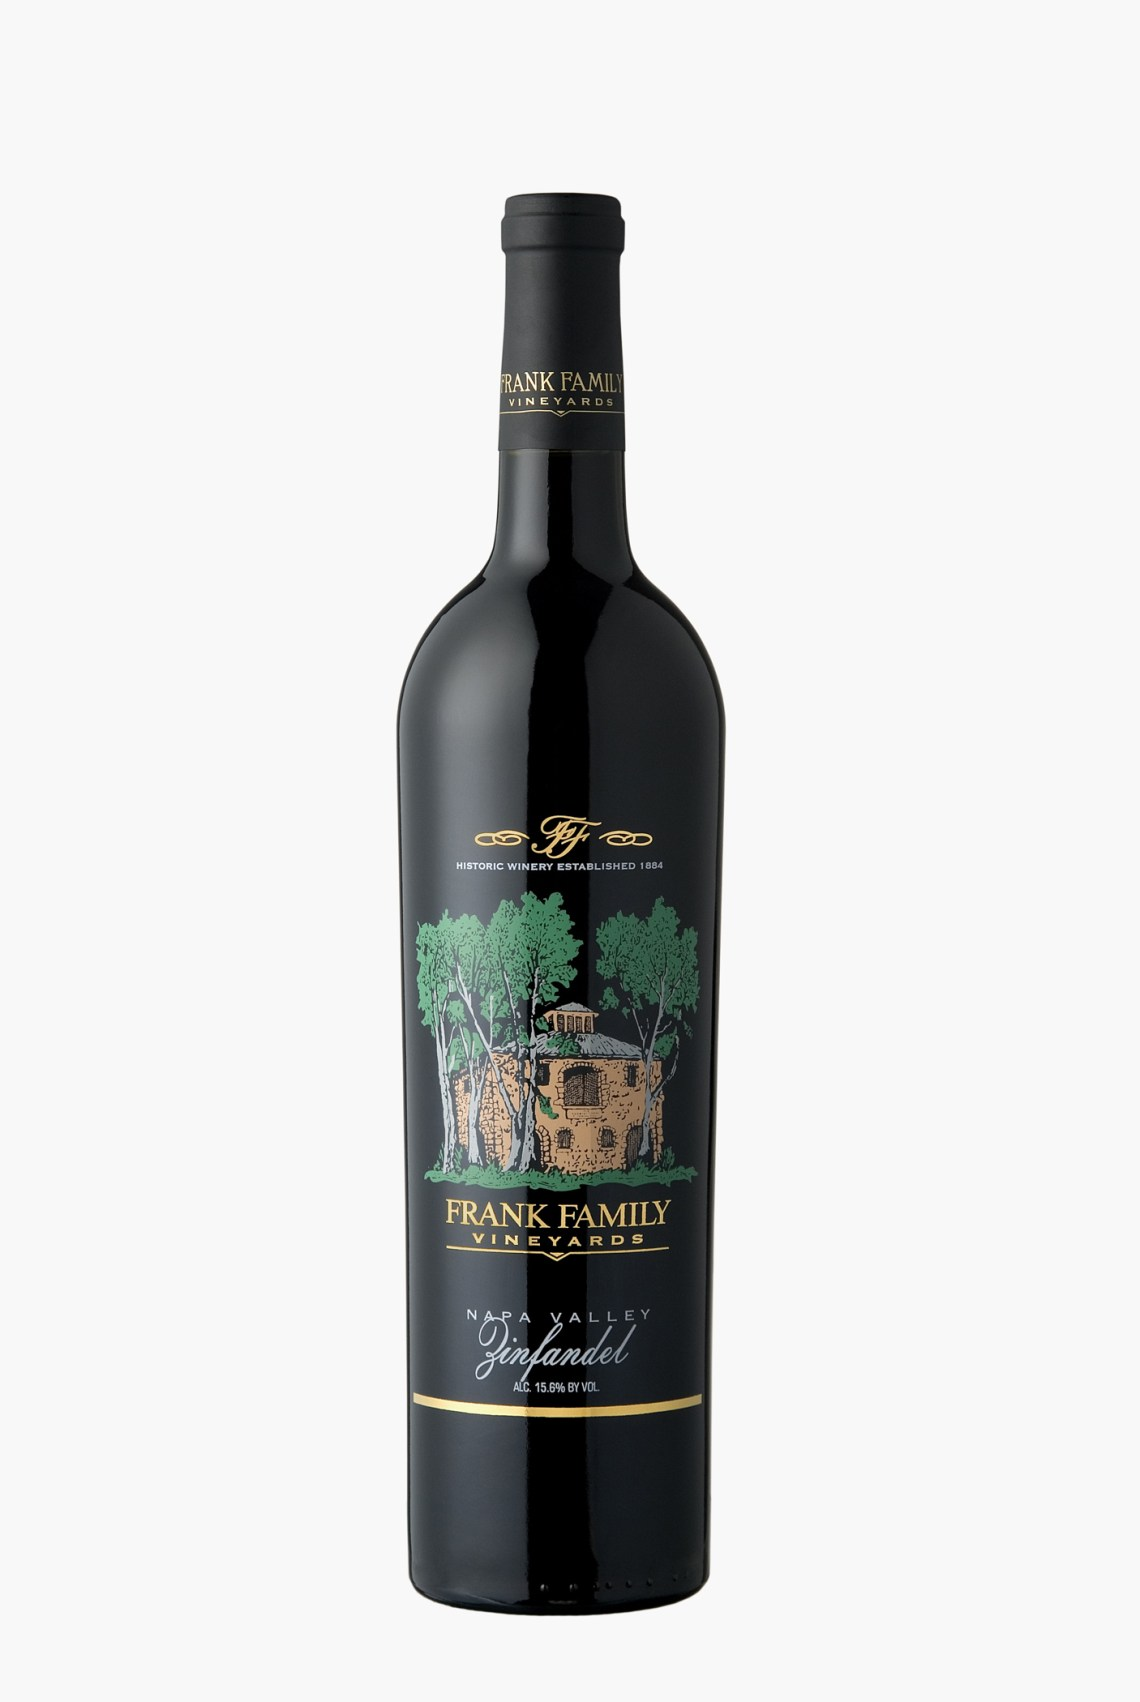 2012 Frank Family Vineyards Zinfandel Napa Valley